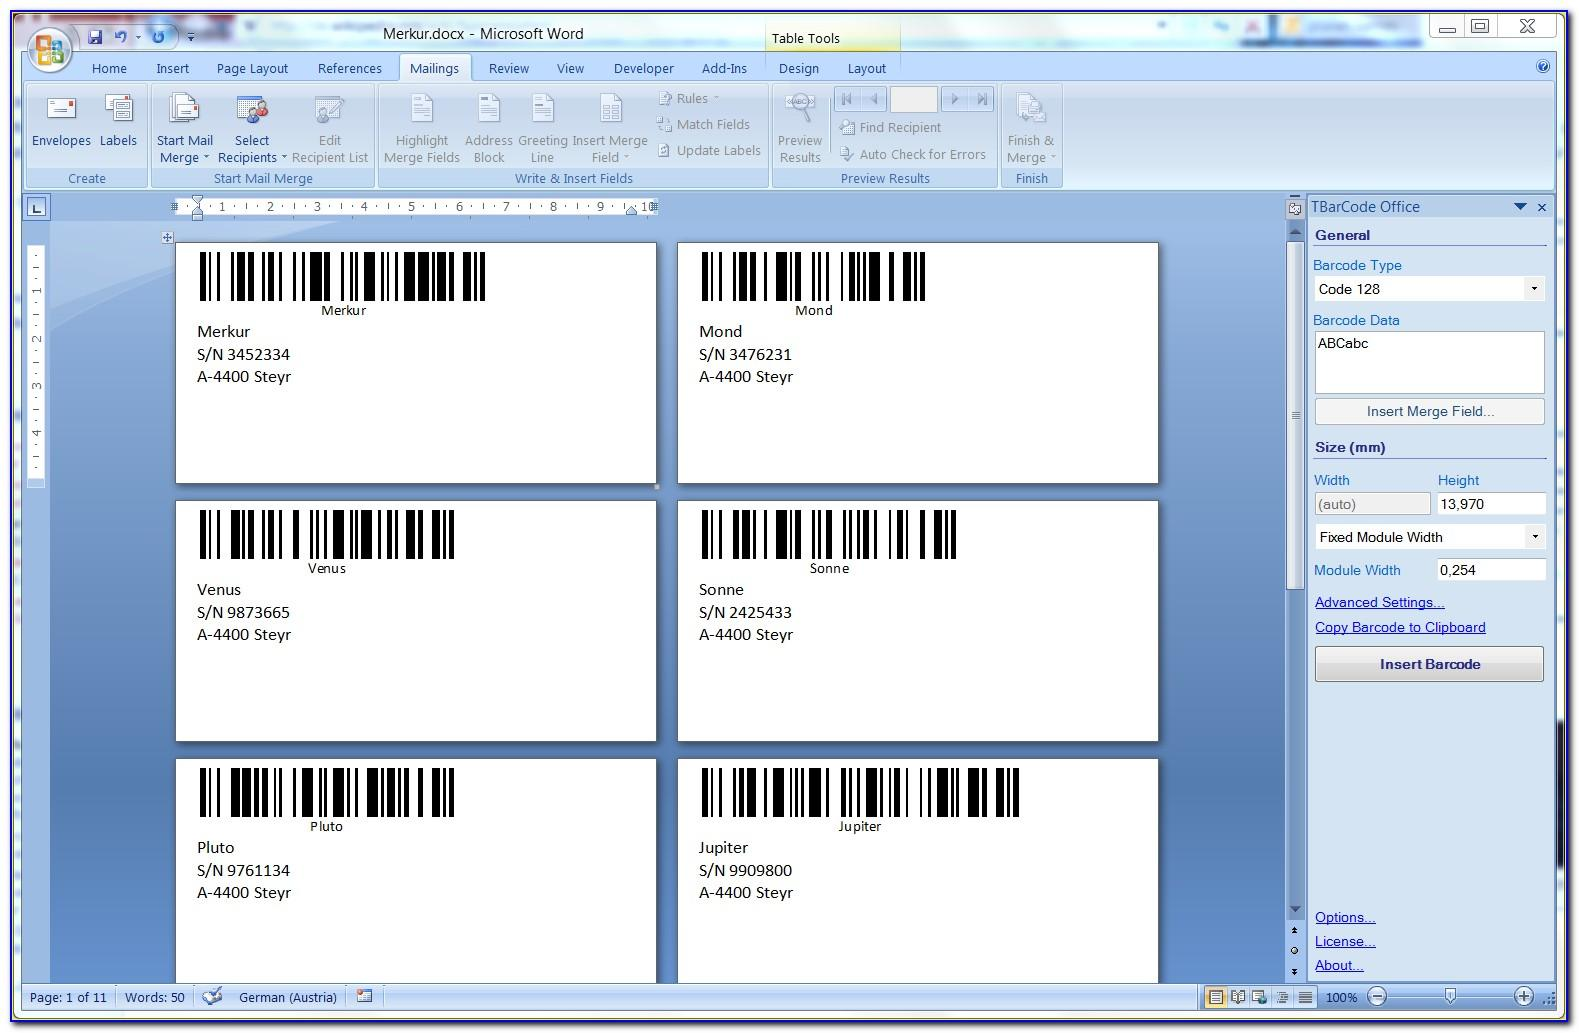 Printing Labels From Excel In Microsoft Word 2010